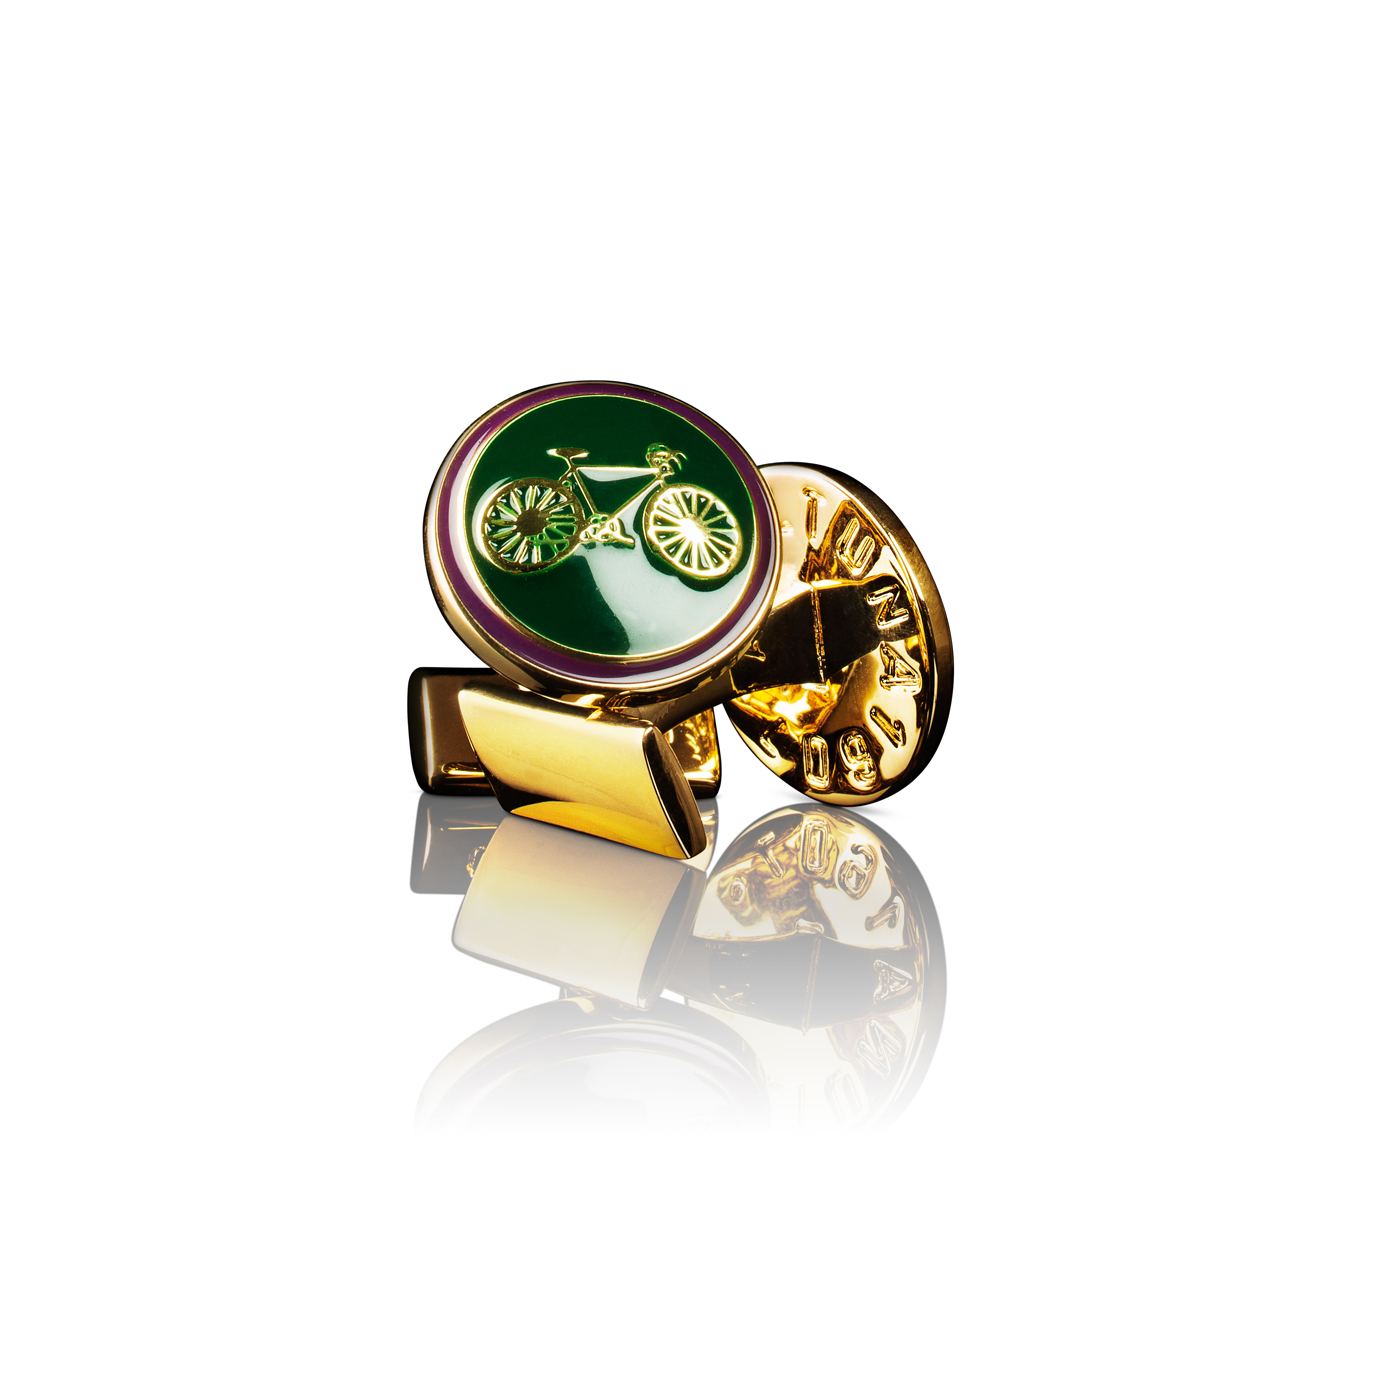 : - Manschettknappar Themocracy Guld British racing green